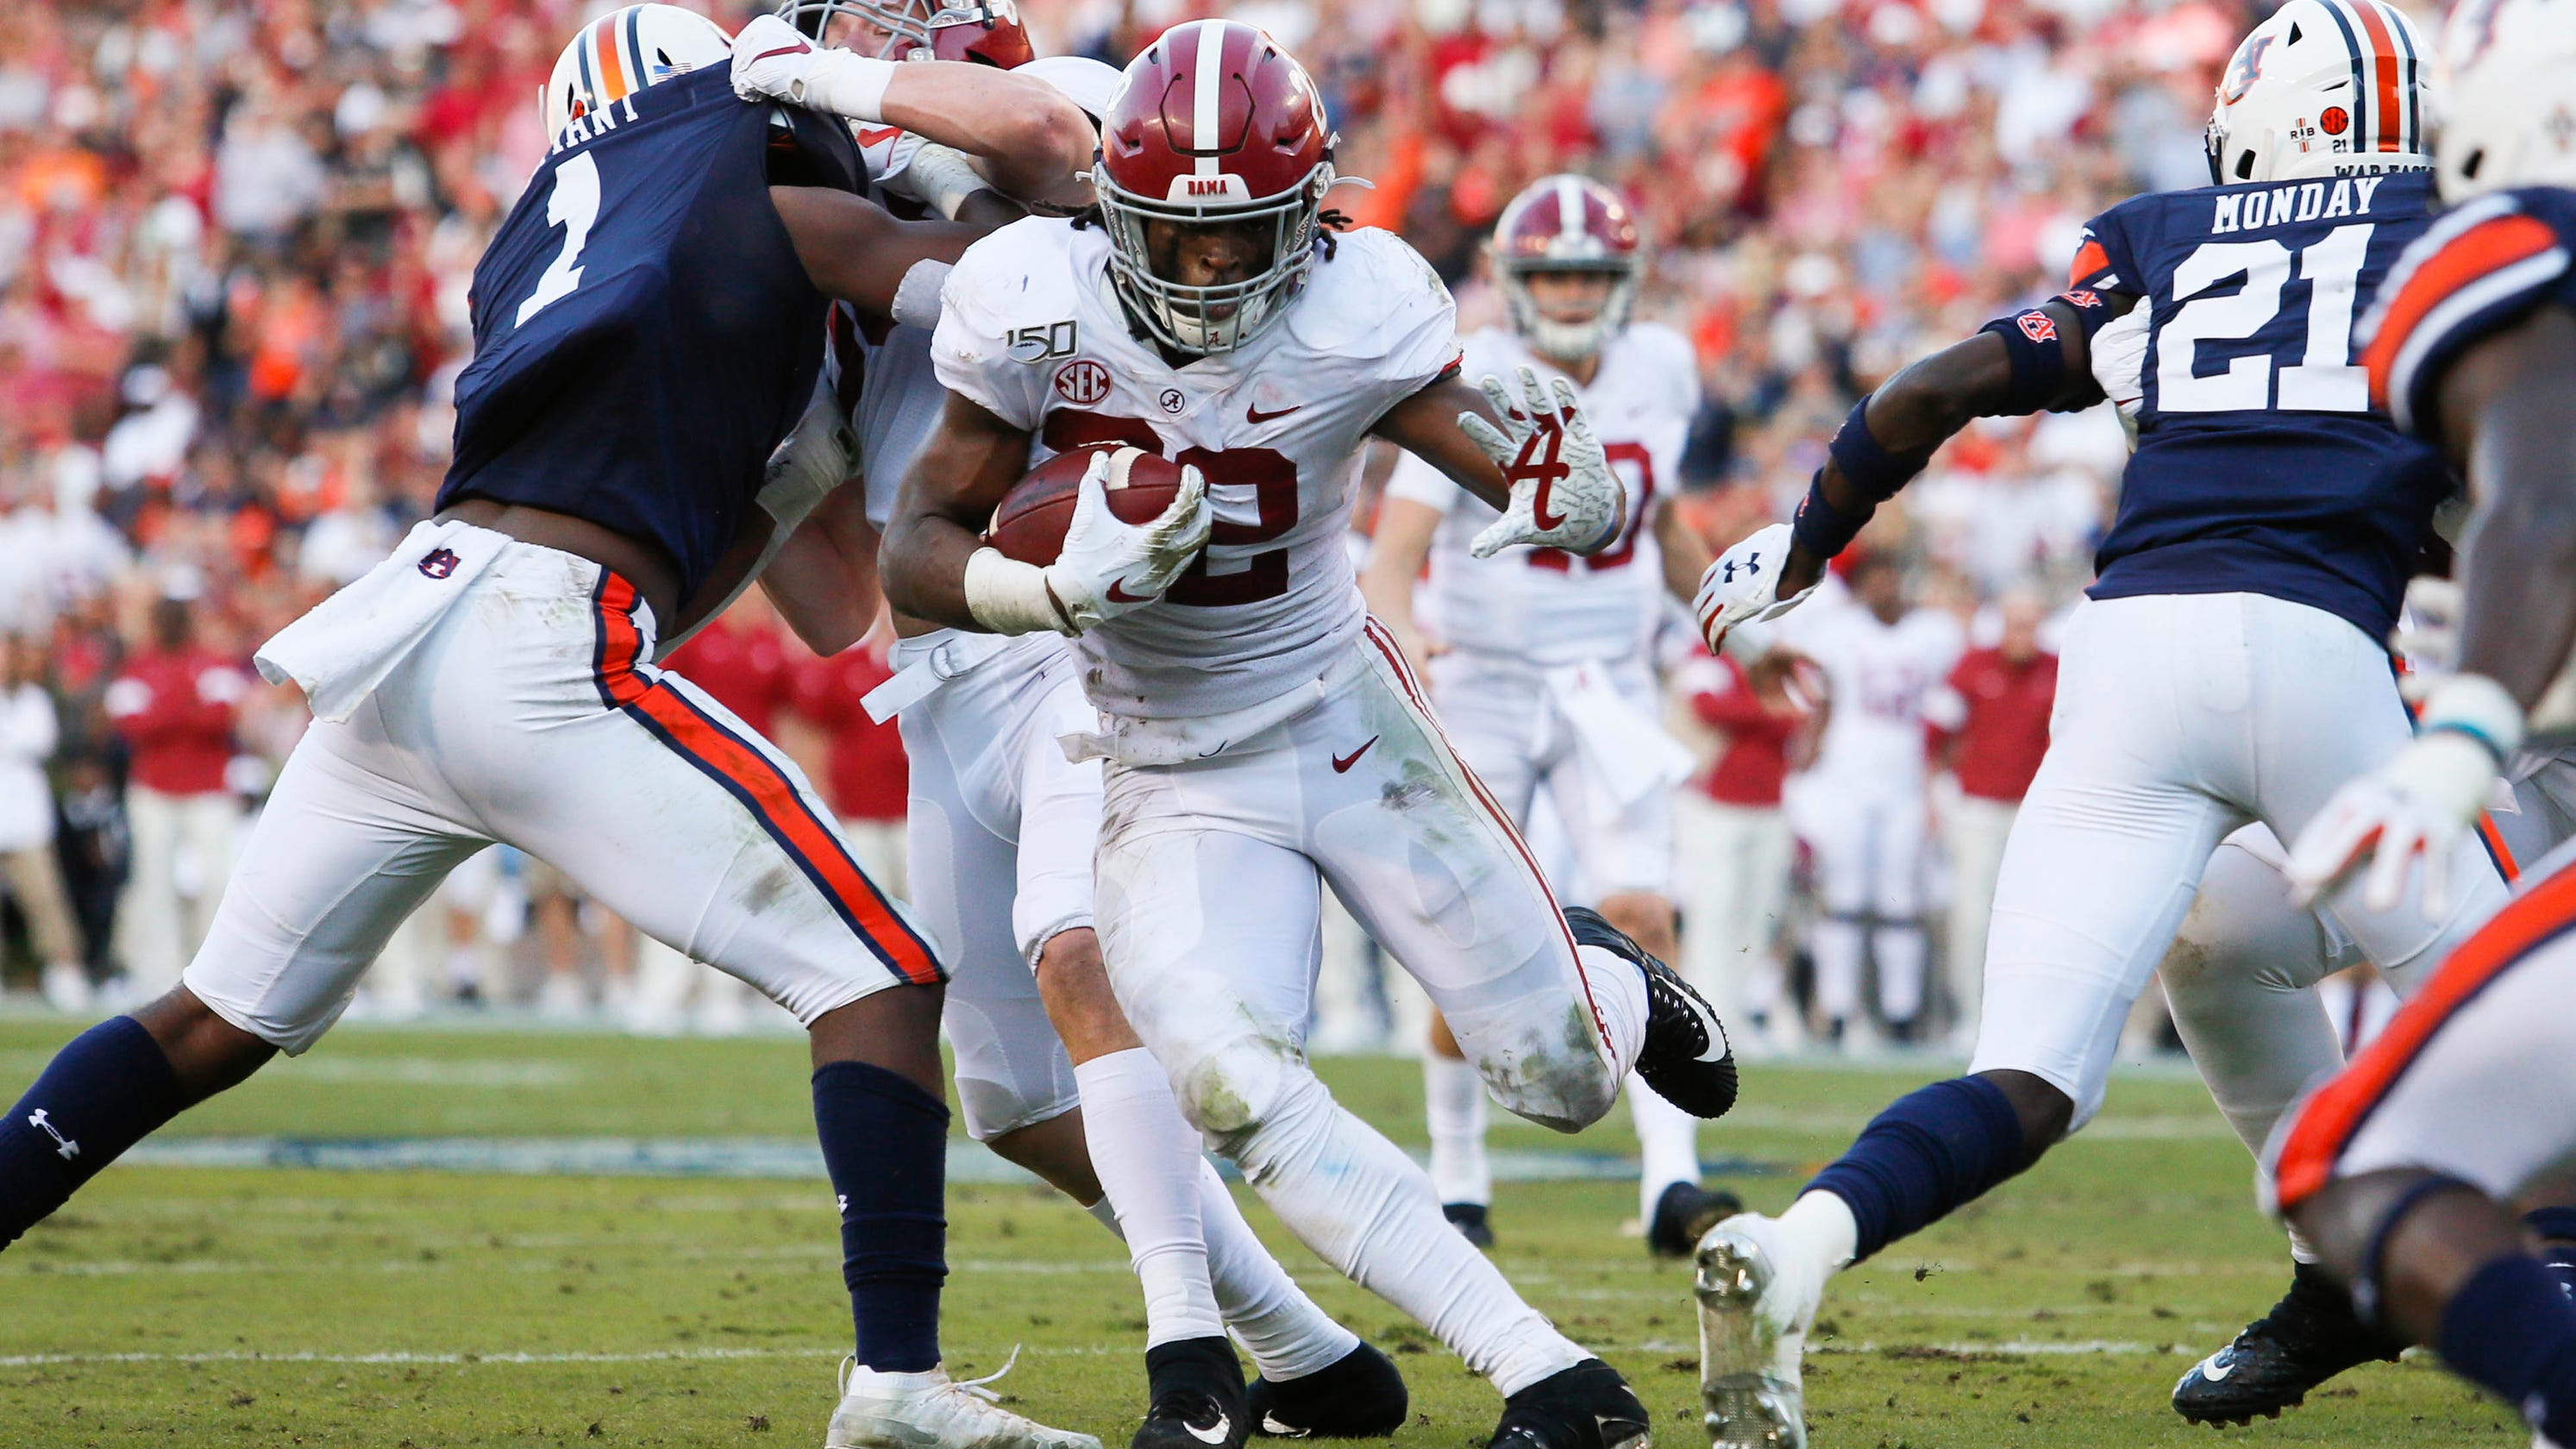 SEC football schedule features conference opponents only in 10 games